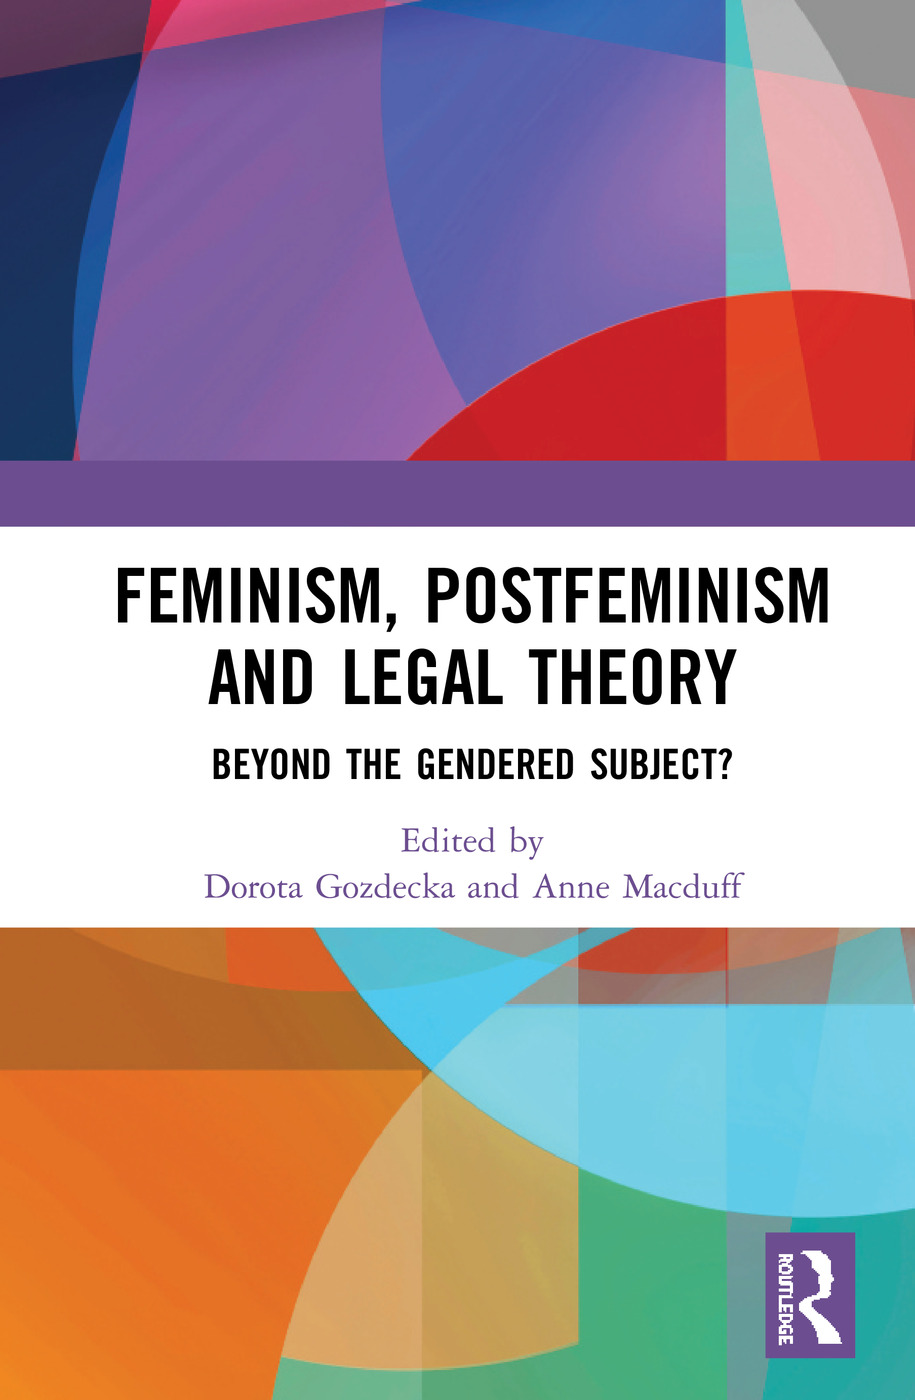 Feminism, Postfeminism and Legal Theory: Beyond the Gendered Subject? book cover